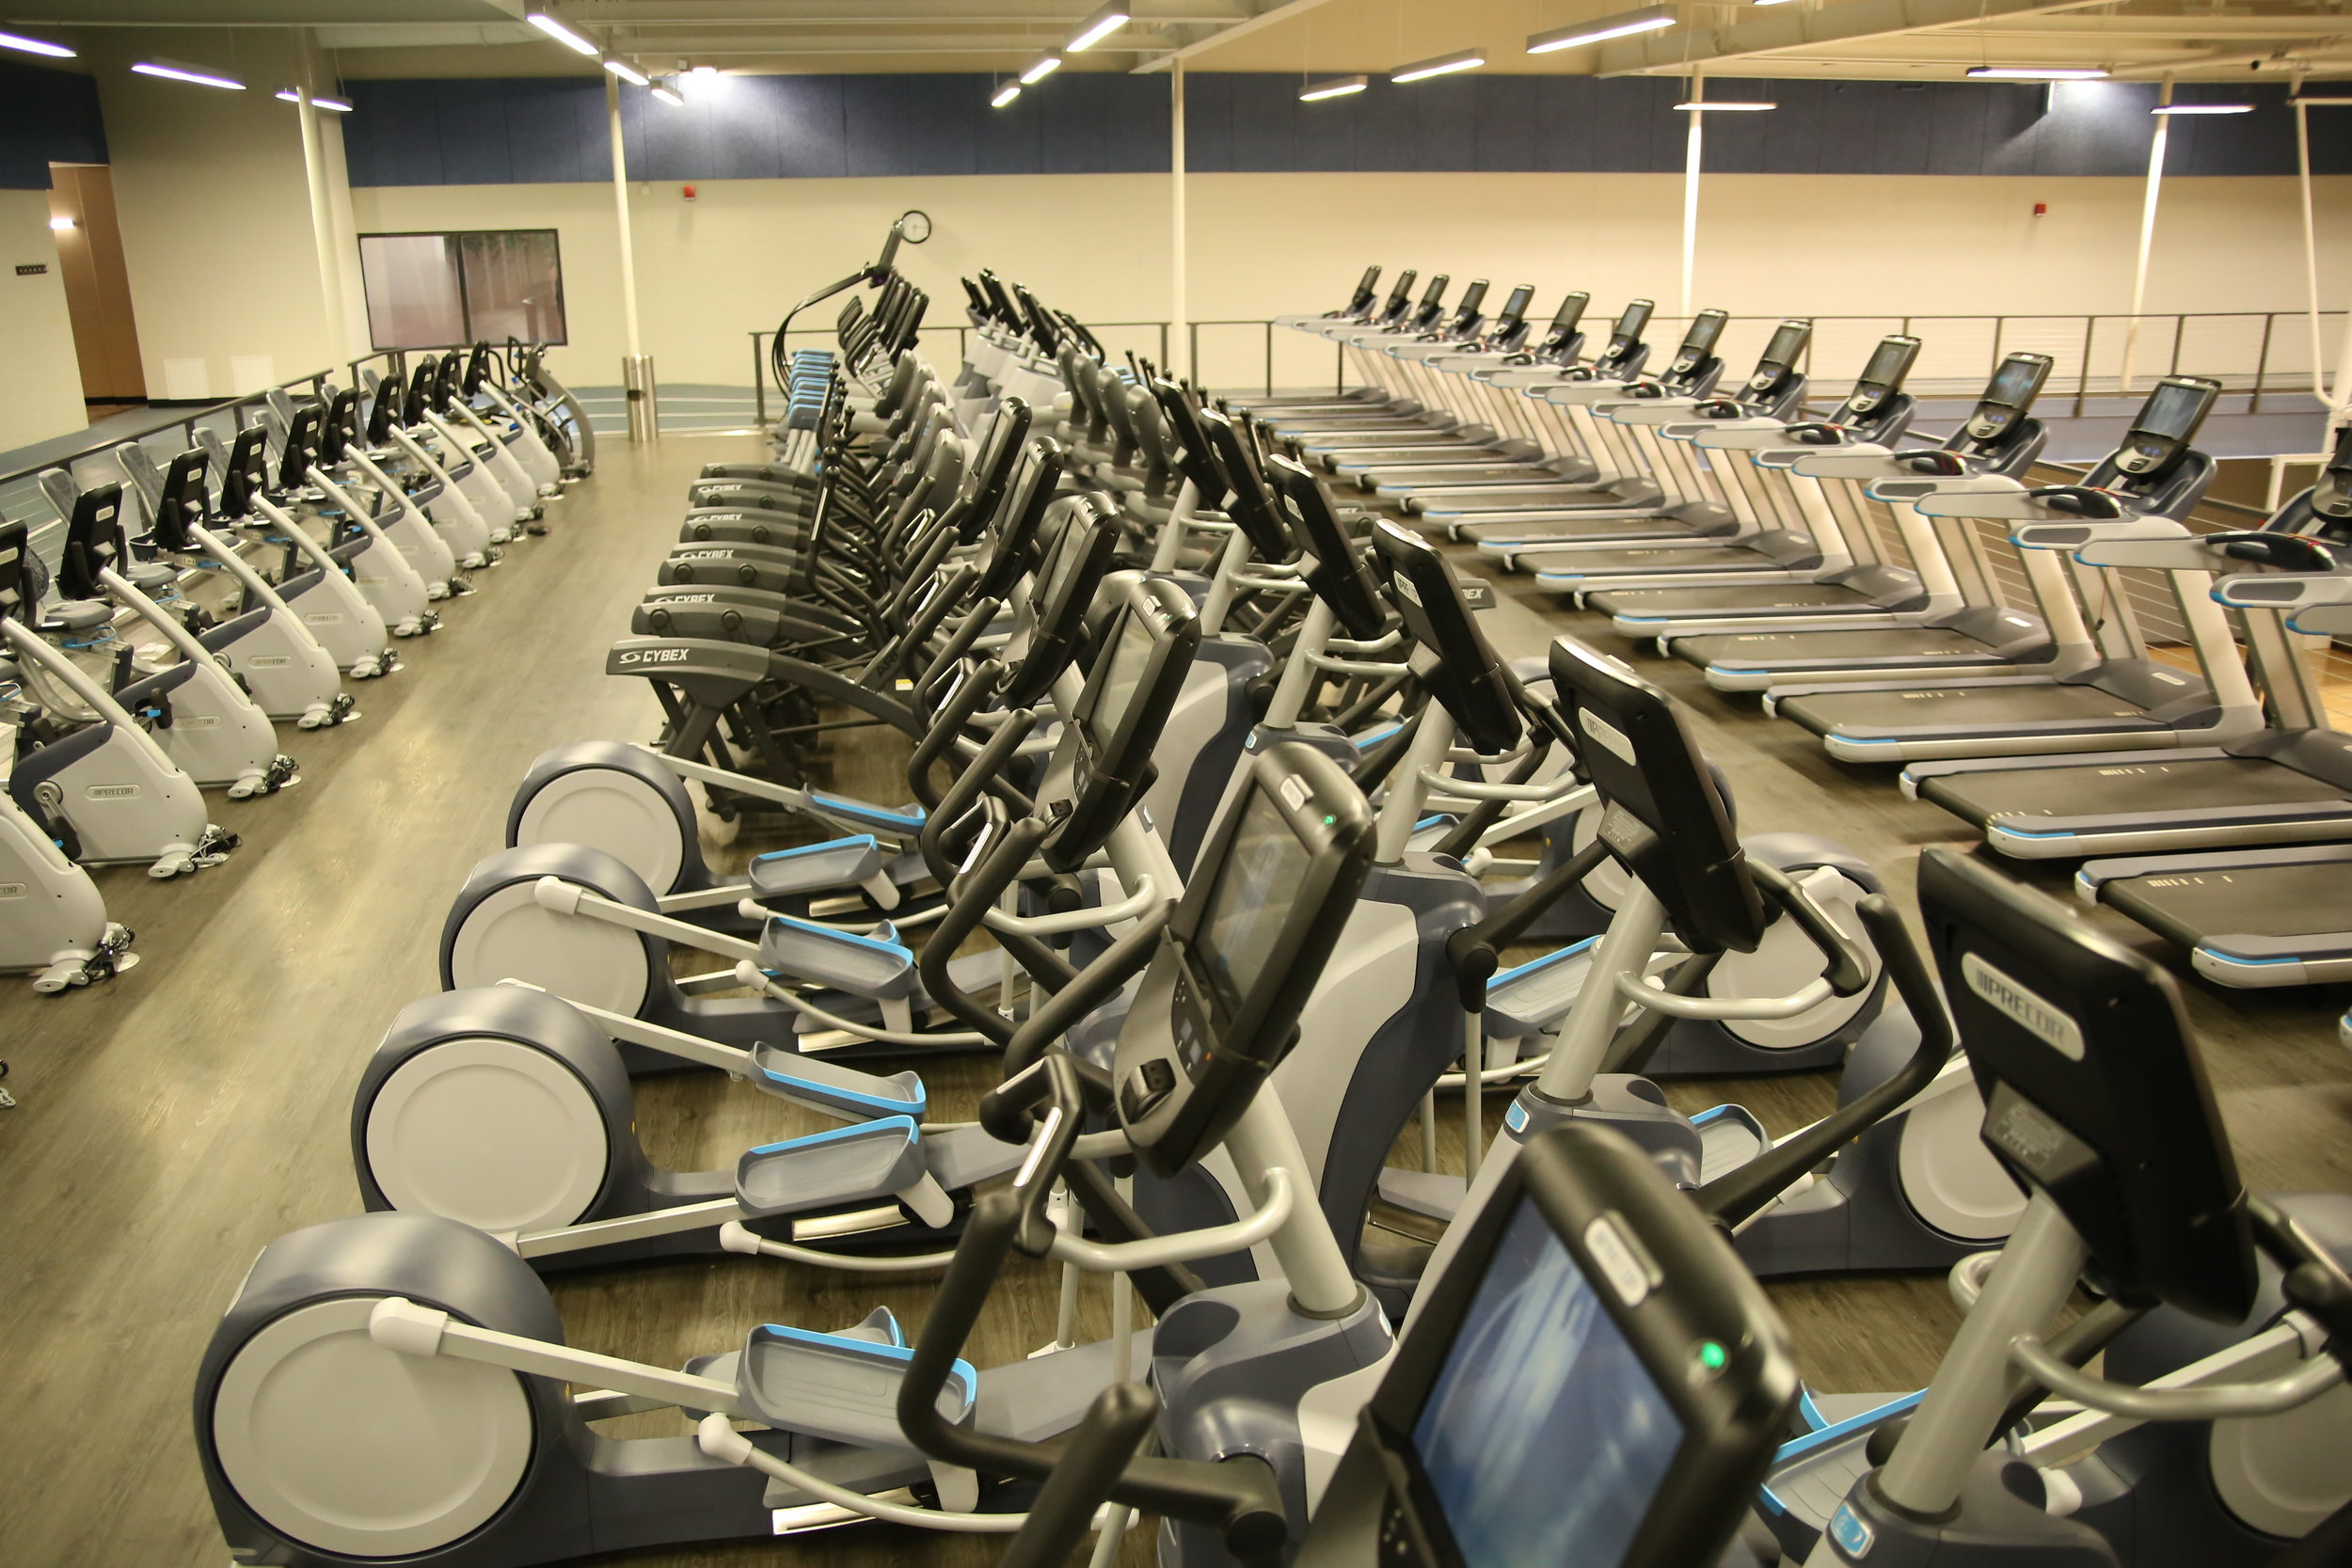 The Club's  Cardio Deck  is over 3,500 sq. ft. and includes recumbent bikes, ellipticals, treadmills, crosstrainers and more. Watch your favorite channel or check social medial. Members can even create an account to personalize their workout experience.